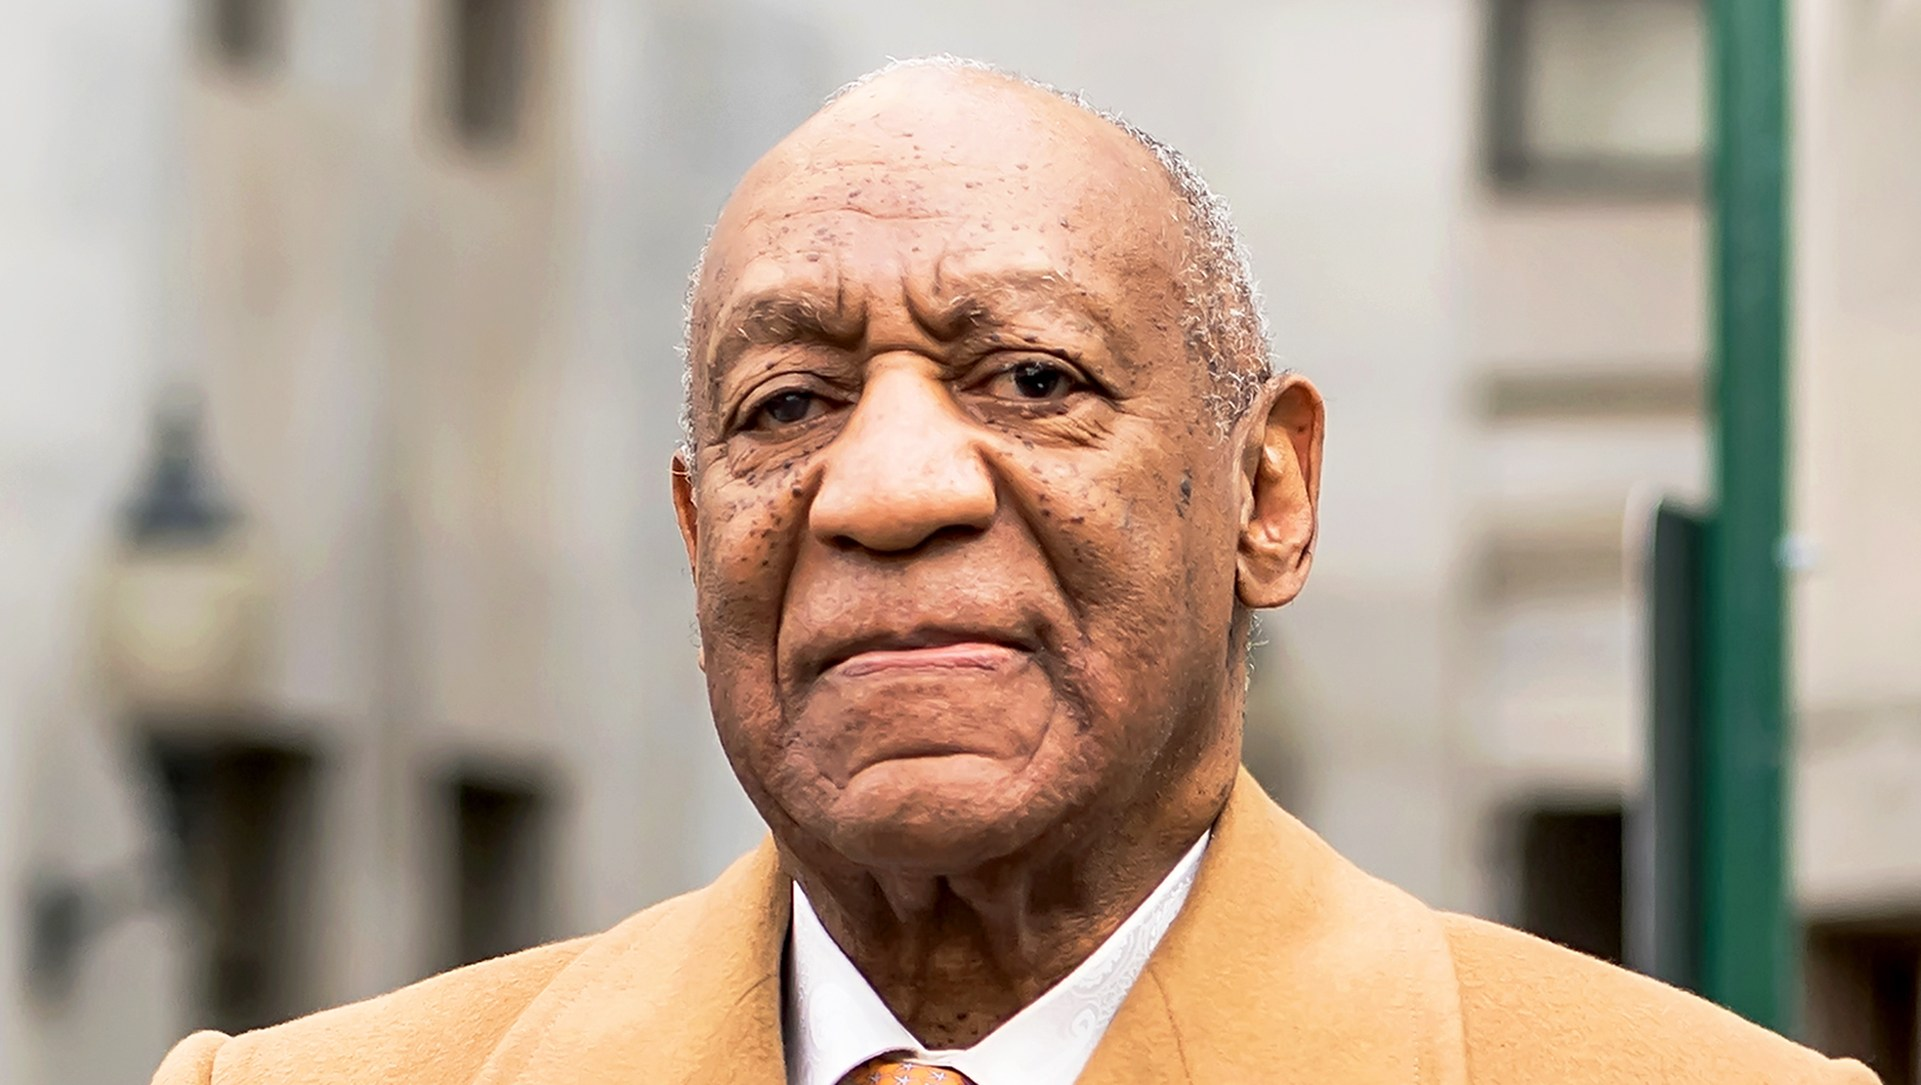 Bill Cosby leaving the Montgomery County Courthouse during the sexual assault charges on April 12, 2018 in Norristown, Pennsylvania.